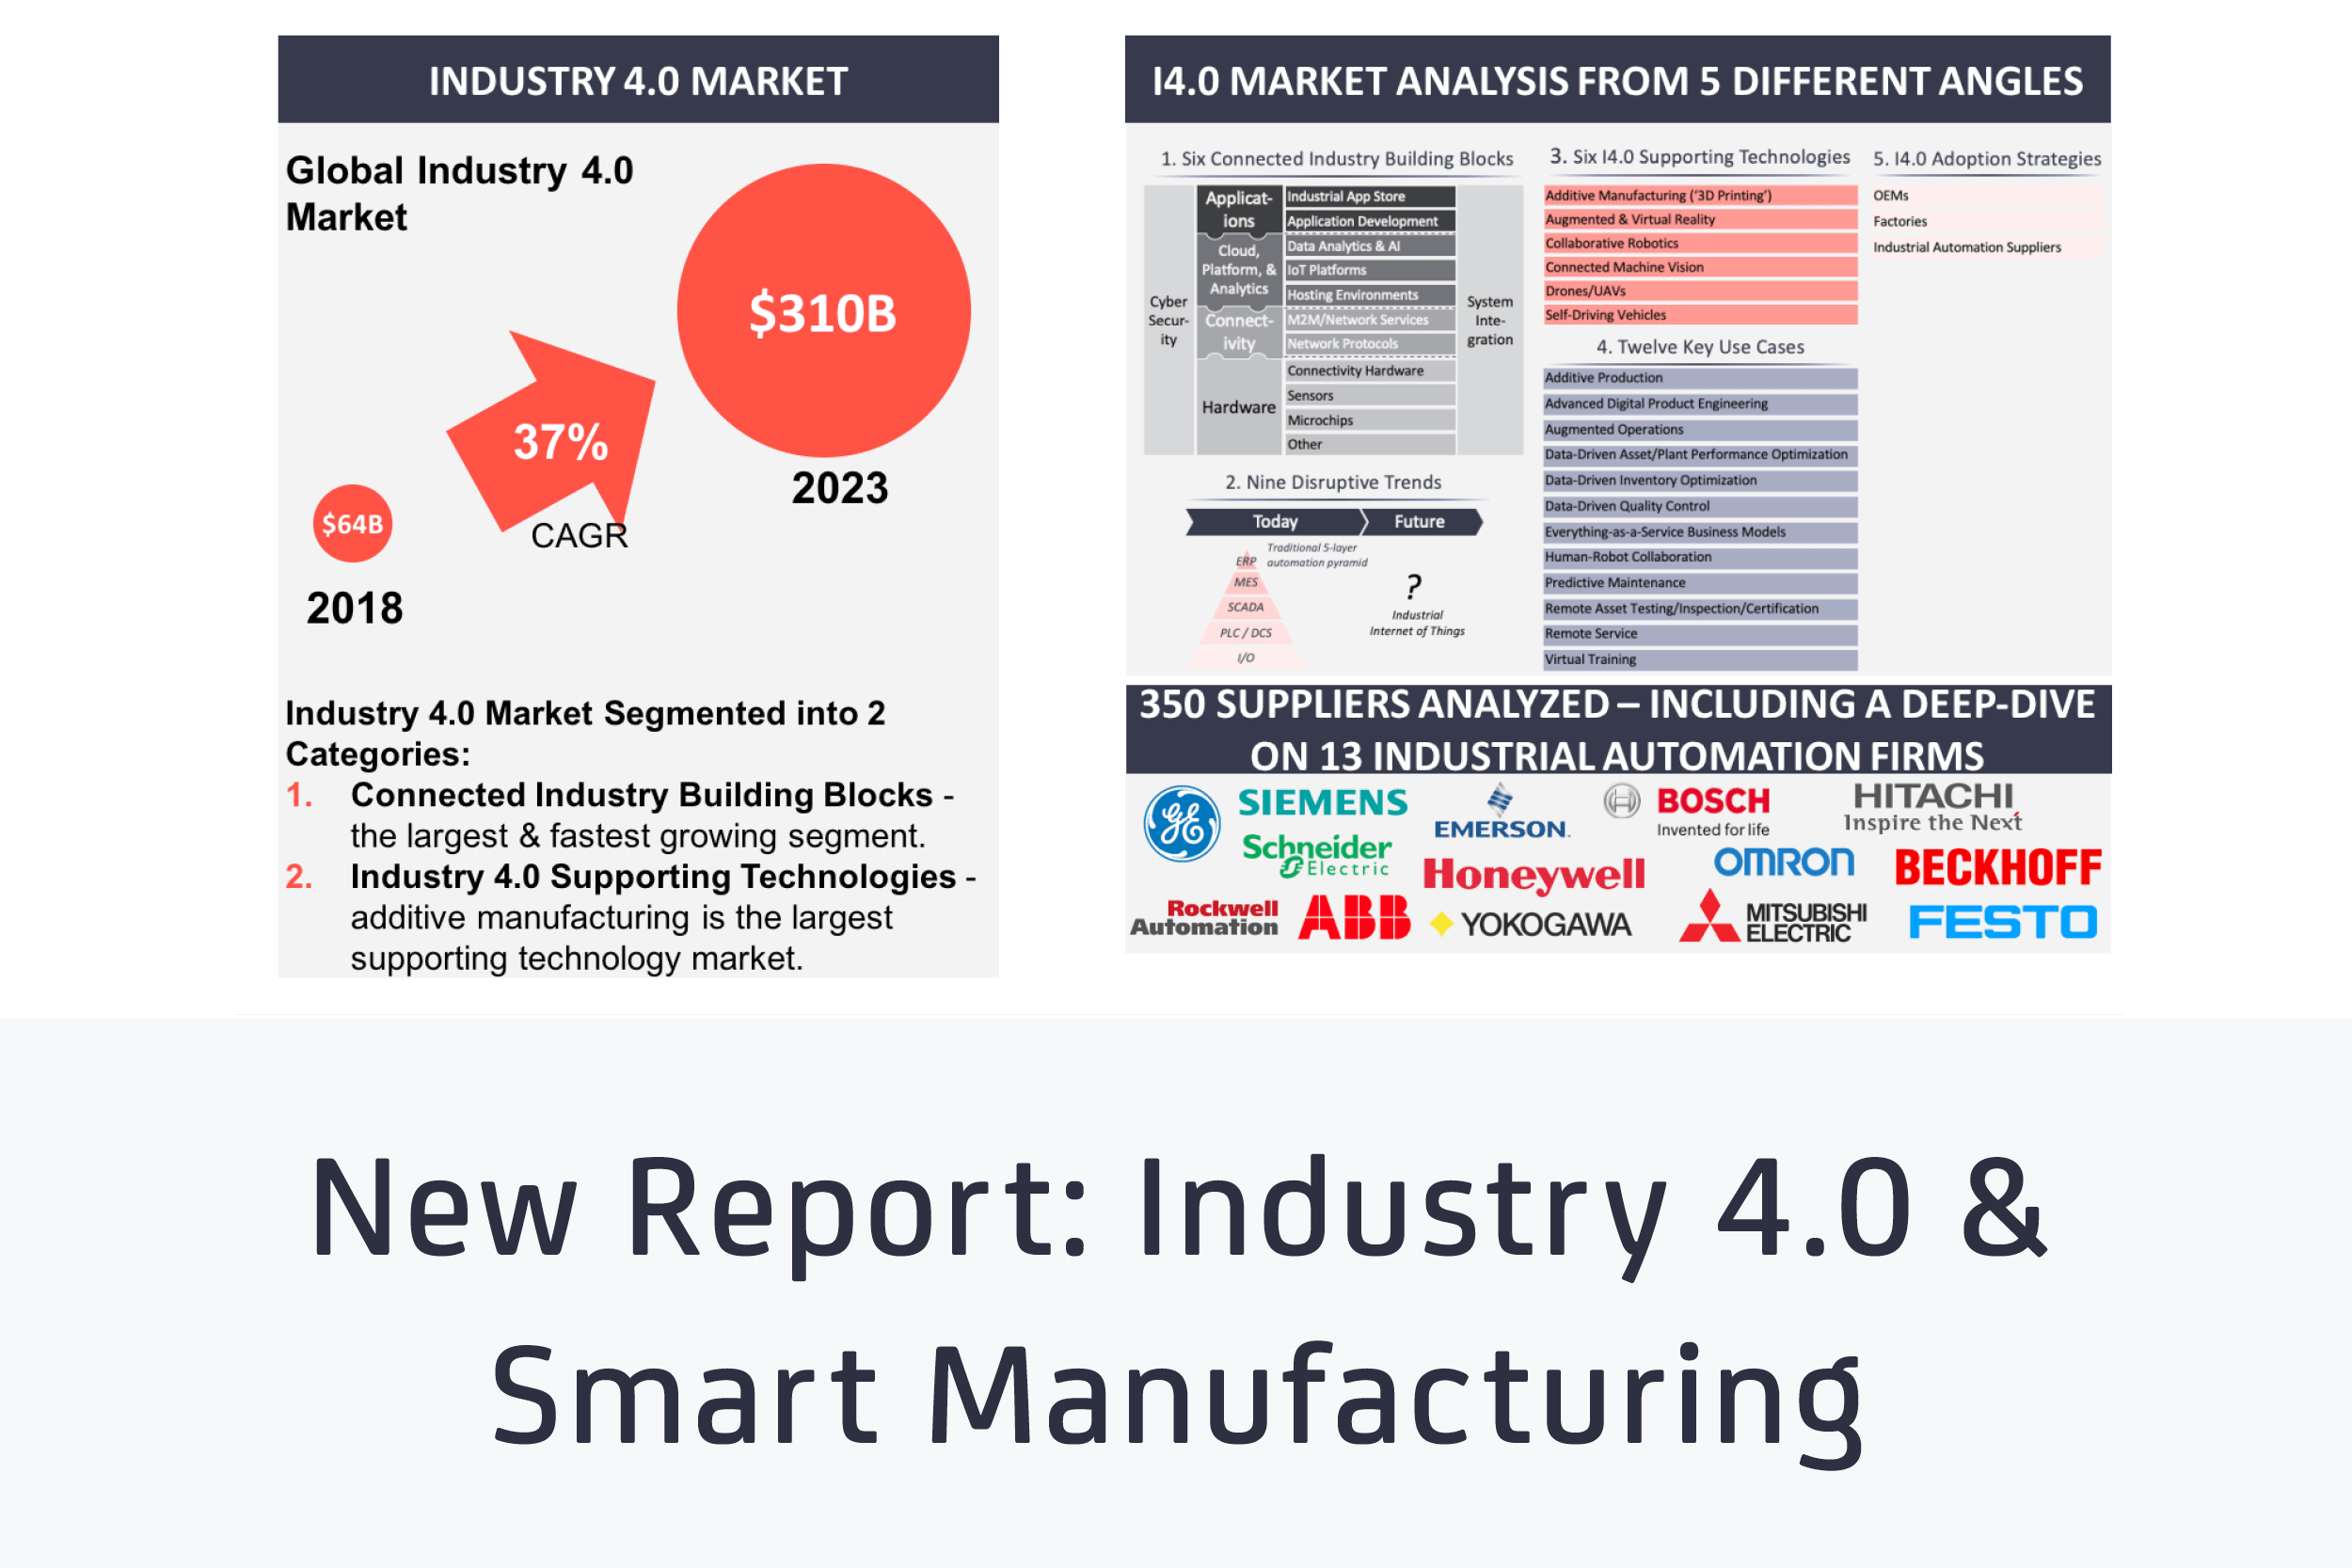 New I4 0 Report Uncovers 9 Disruptive Trends Transforming Manufacturing